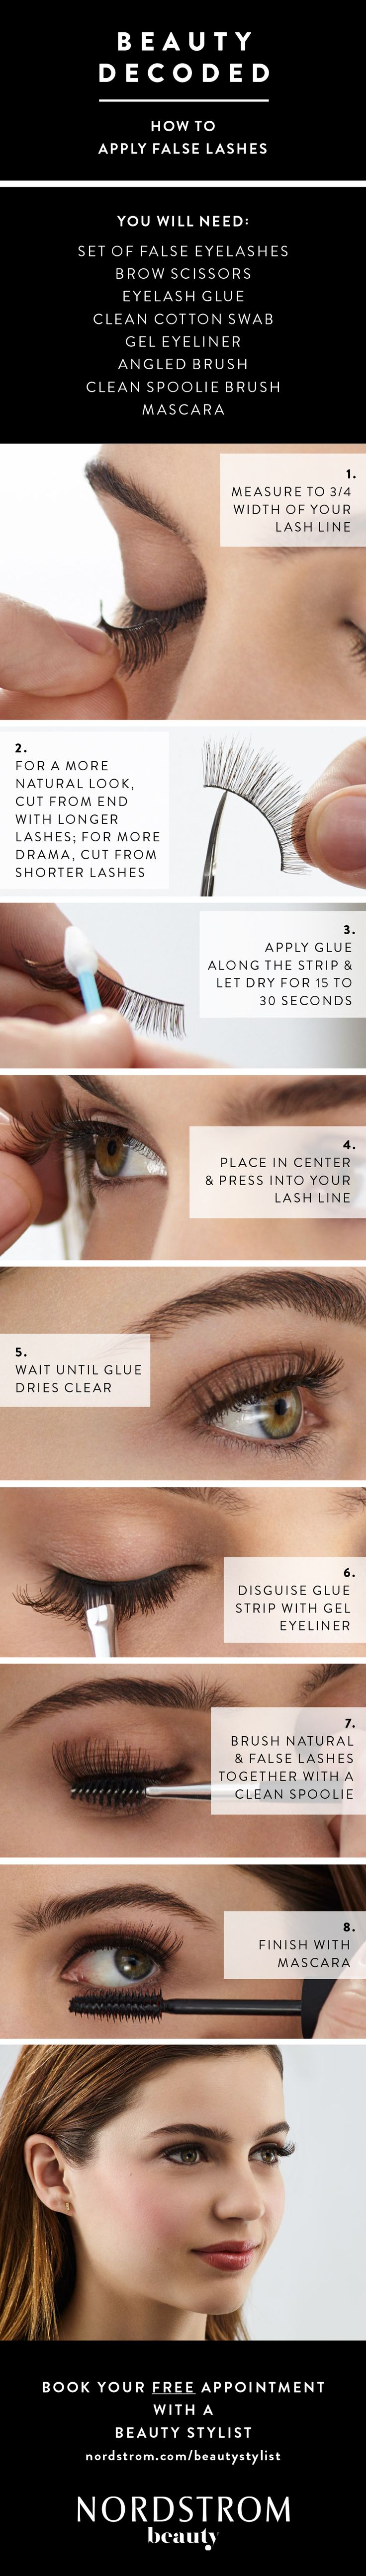 How to apply false lashes in 7 easy steps. Tips from the beauty pros at Nordstrom that will help make you look flawless every time you wear fake eyelashes. Make sure you have a good eyelash glue and let it try for up about 30 seconds before applying.